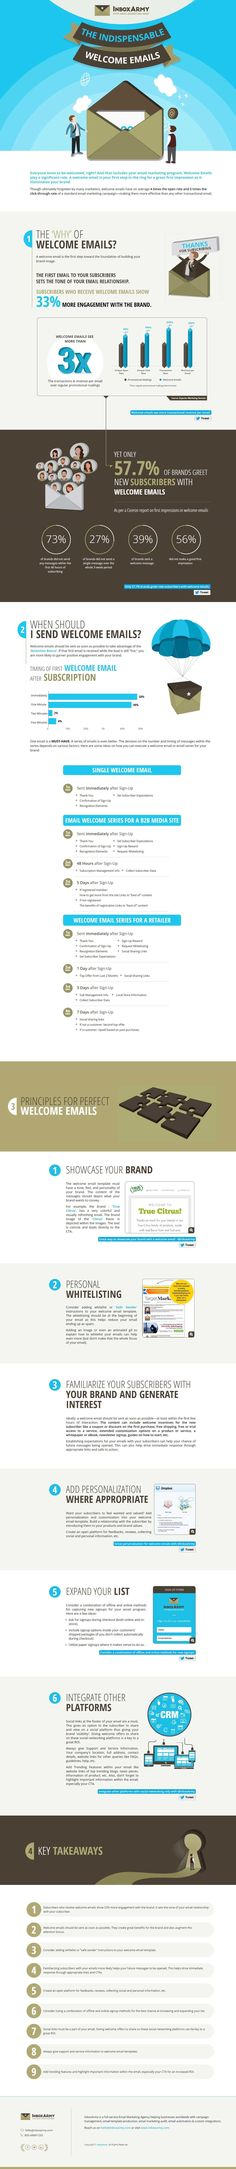 Creating an Indispensable Welcome Email